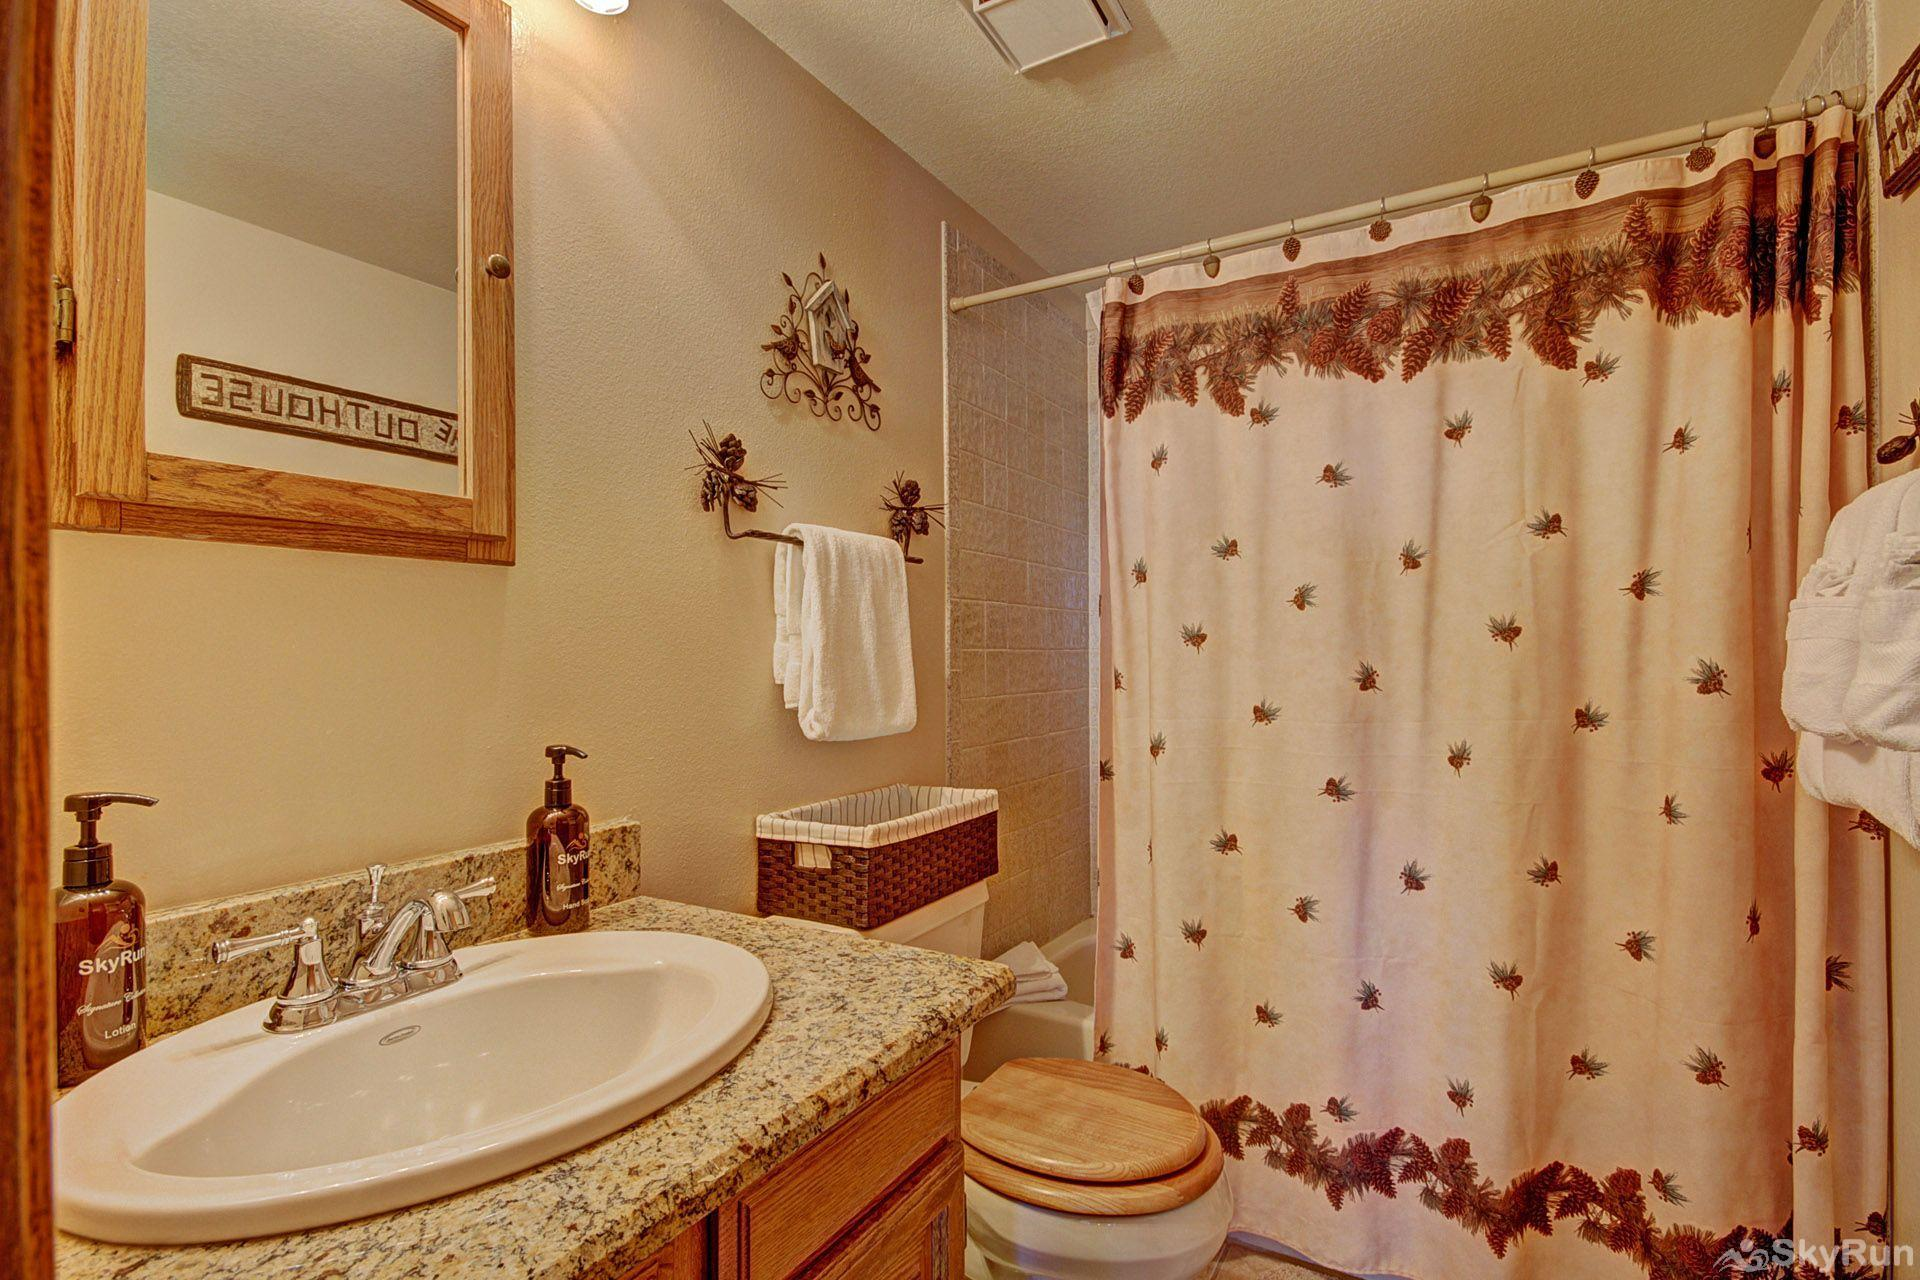 BB204 Buffalo Village 2BR 2BA Master bathroom